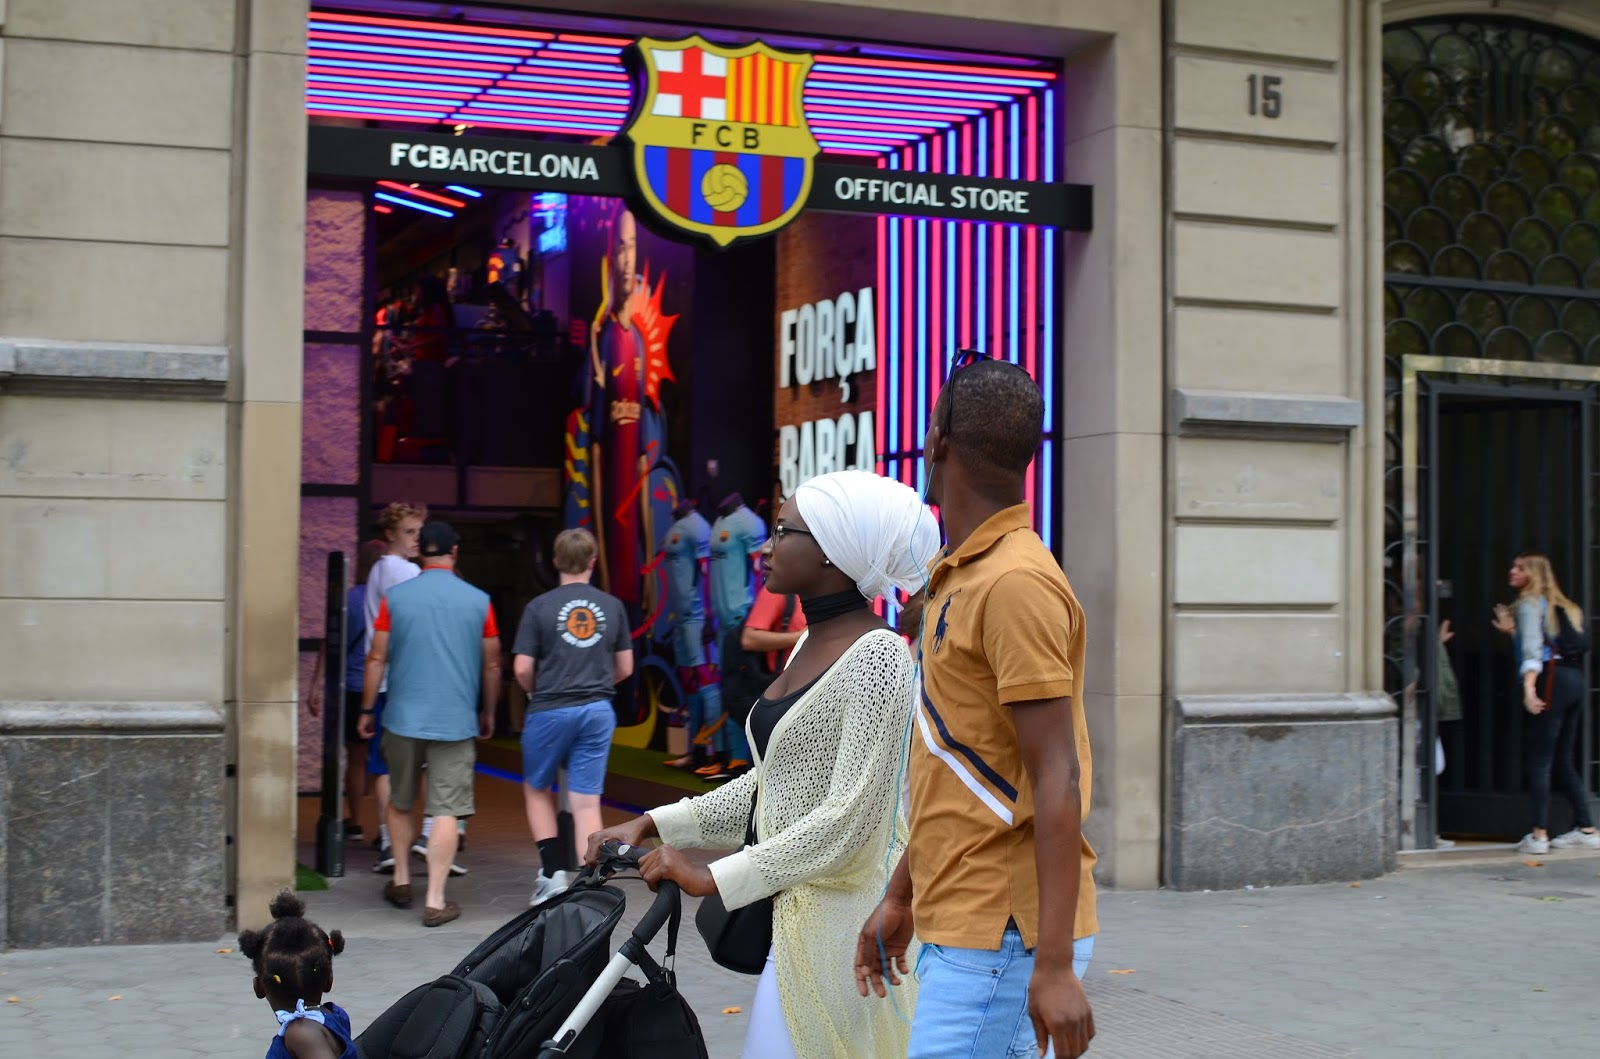 FCBarcelona Official Store